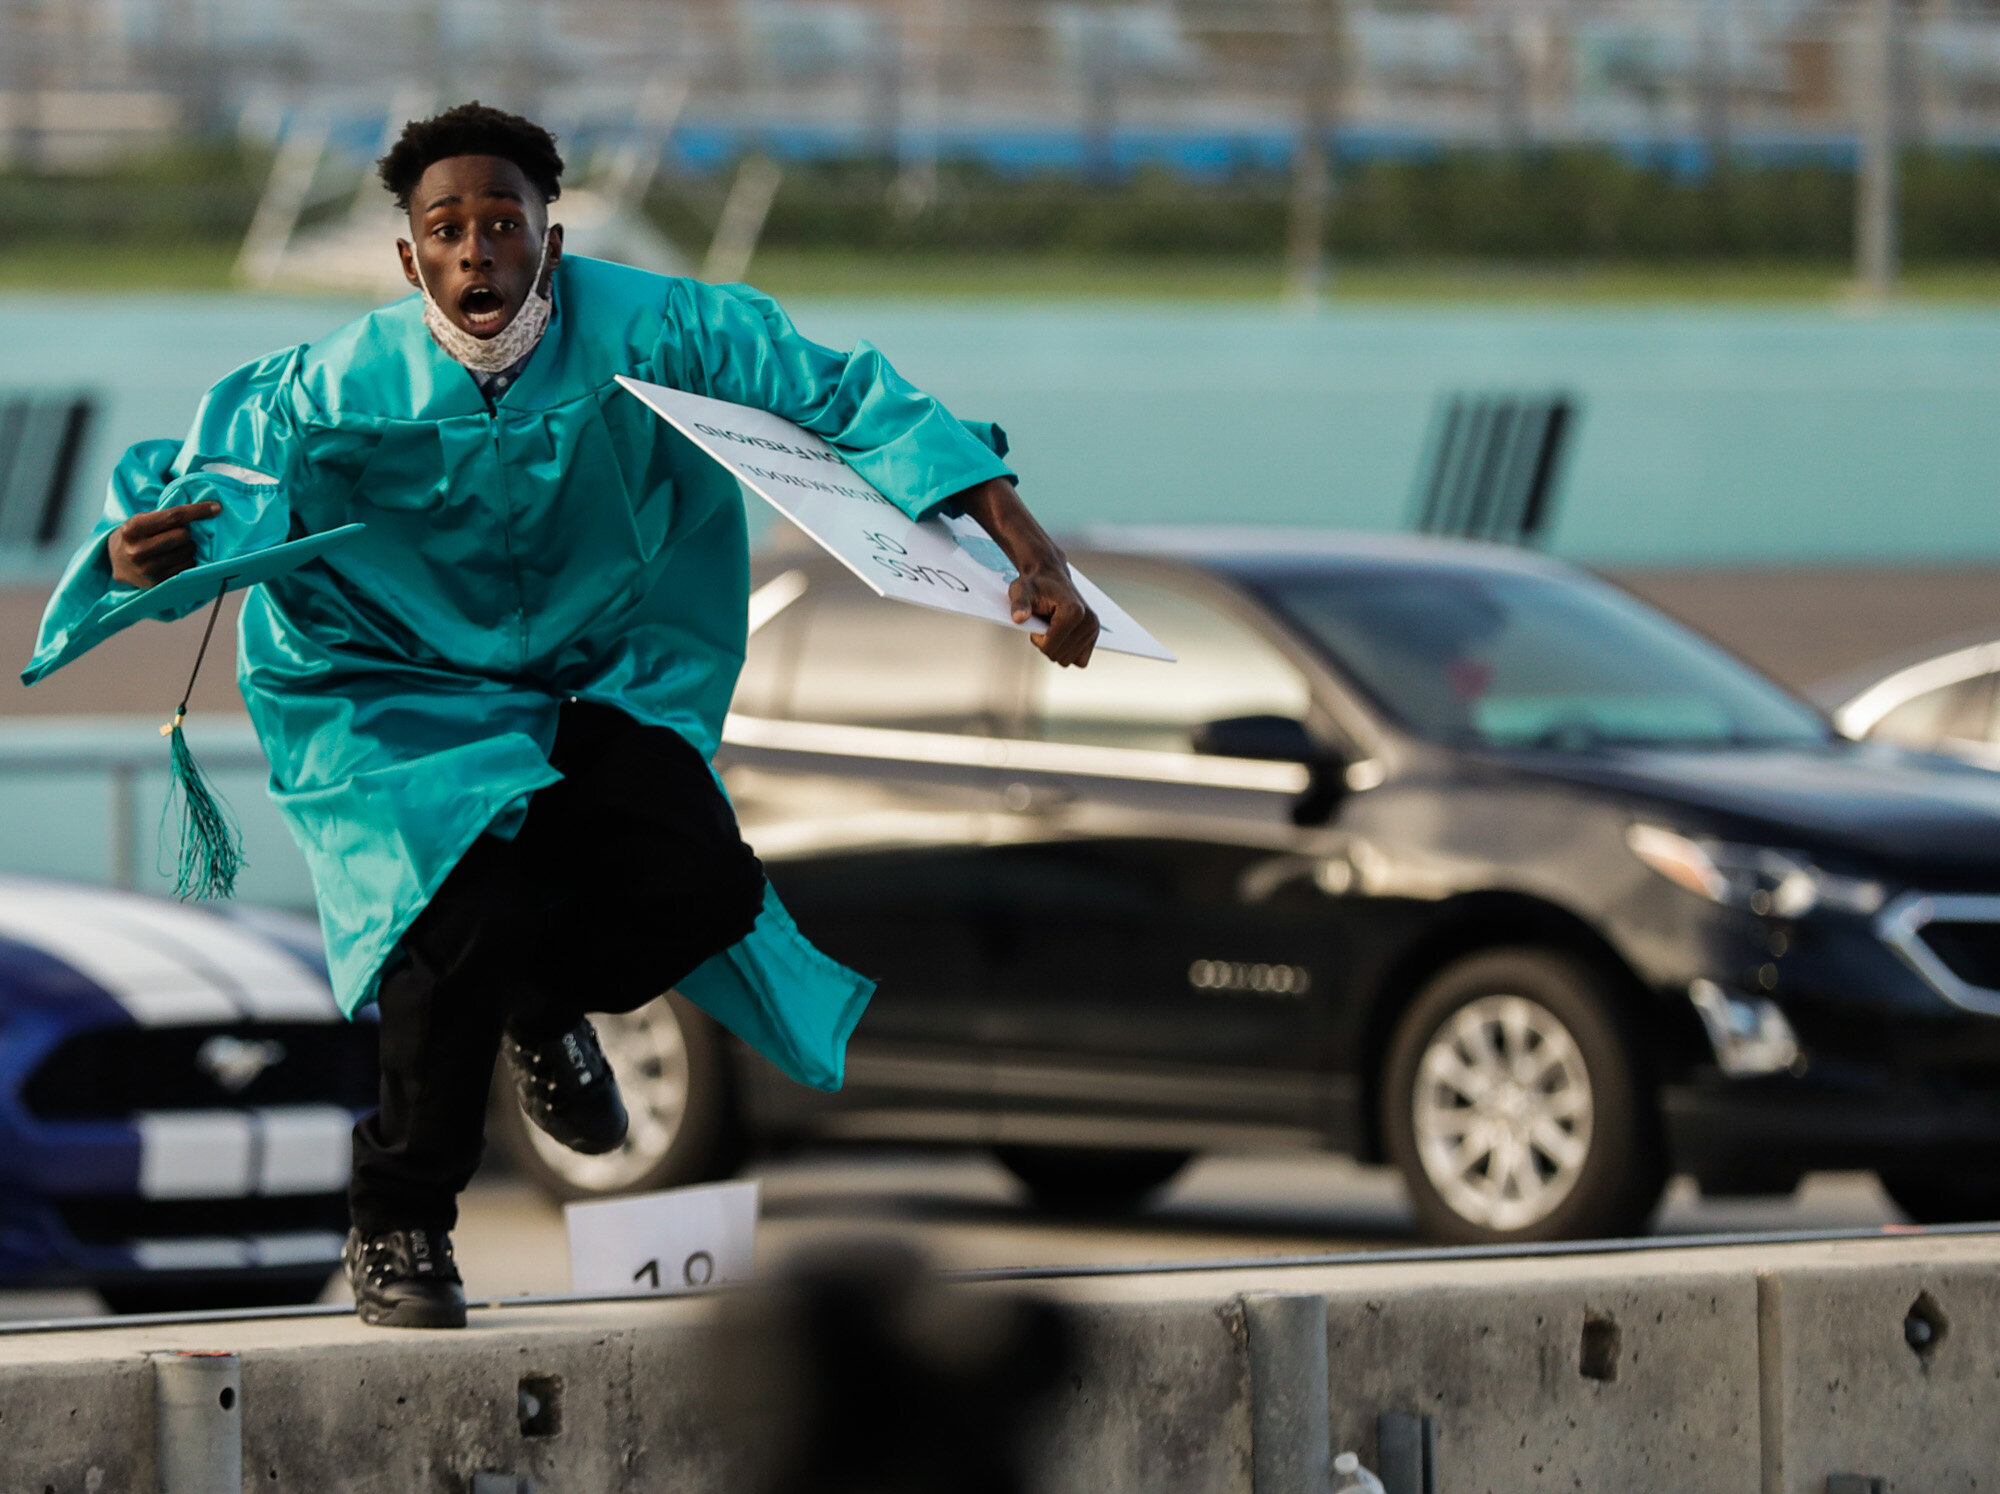 Richardson Fremond leaps over a wall as he runs to collect an award during the Chambers High School graduation ceremony at Homestead-Miami Speedway in Homestead, Fla., on June 23, 2020. The ceremony was held at the race track to enable social distancing during the coronavirus pandemic and the 41 seniors who graduated crossed the start-finish line to receive their diplomas. (AP Photo/Wilfredo Lee)